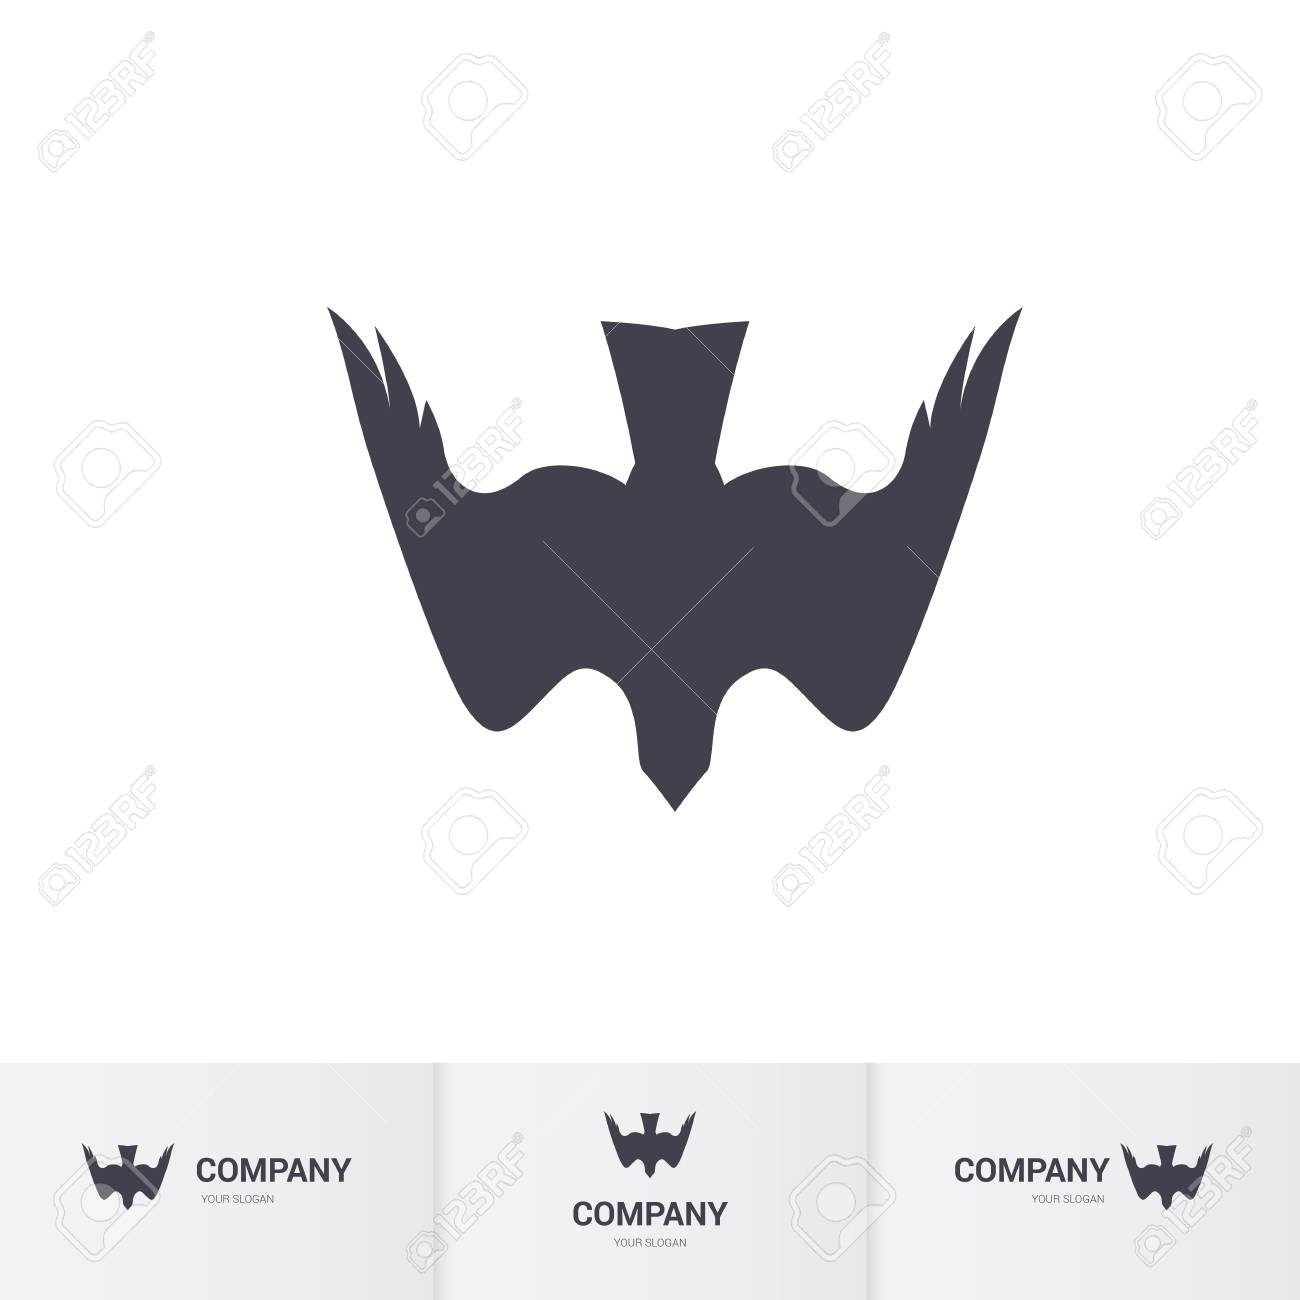 Stylized Bird Of Prey For Mascot Logo Template On White Background Royalty Free Cliparts Vectors And Stock Illustration Image 80787933